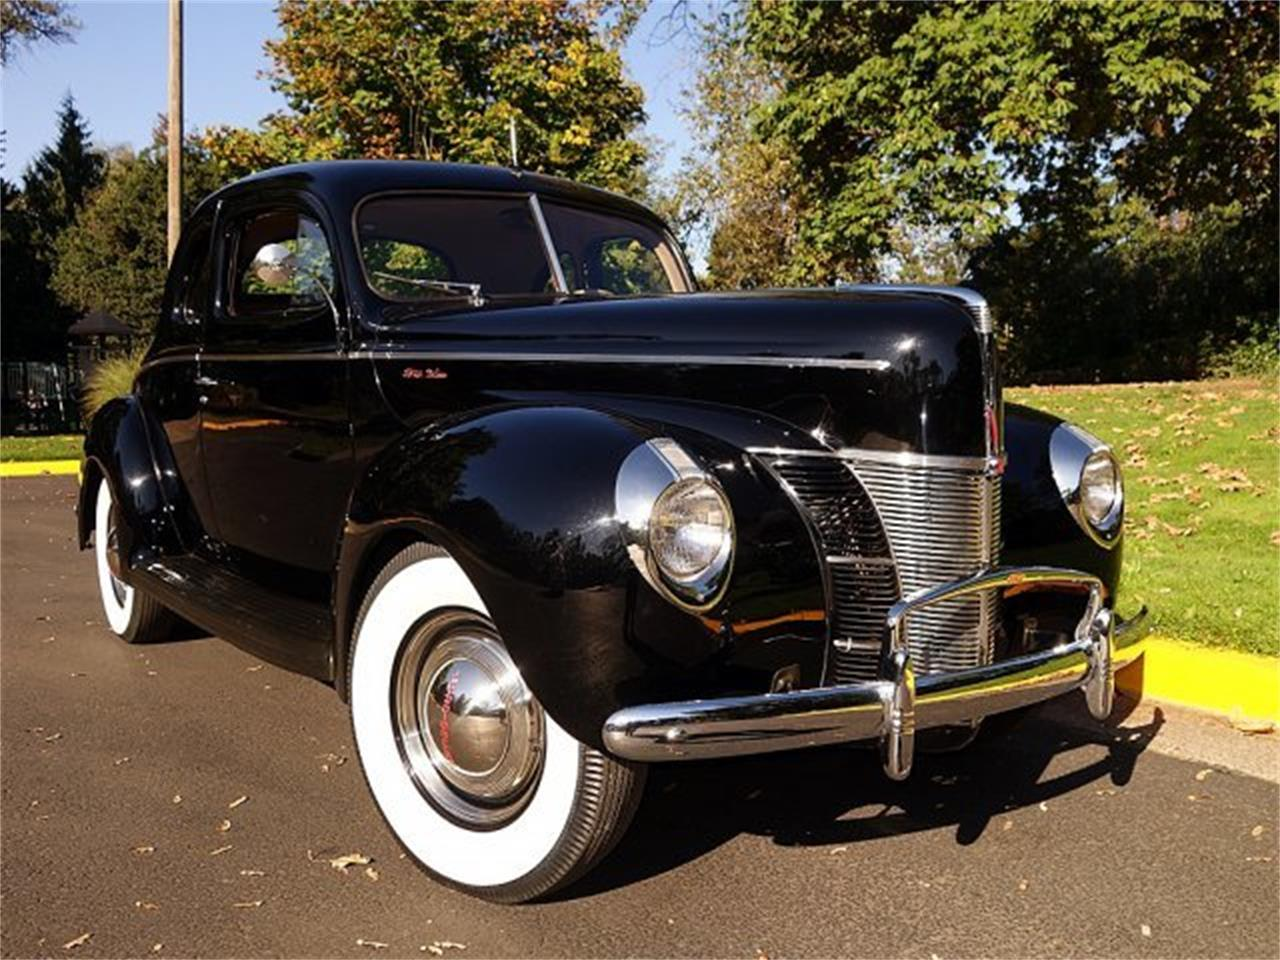 For Sale: 1940 Ford Business Coupe in Eugene, Oregon